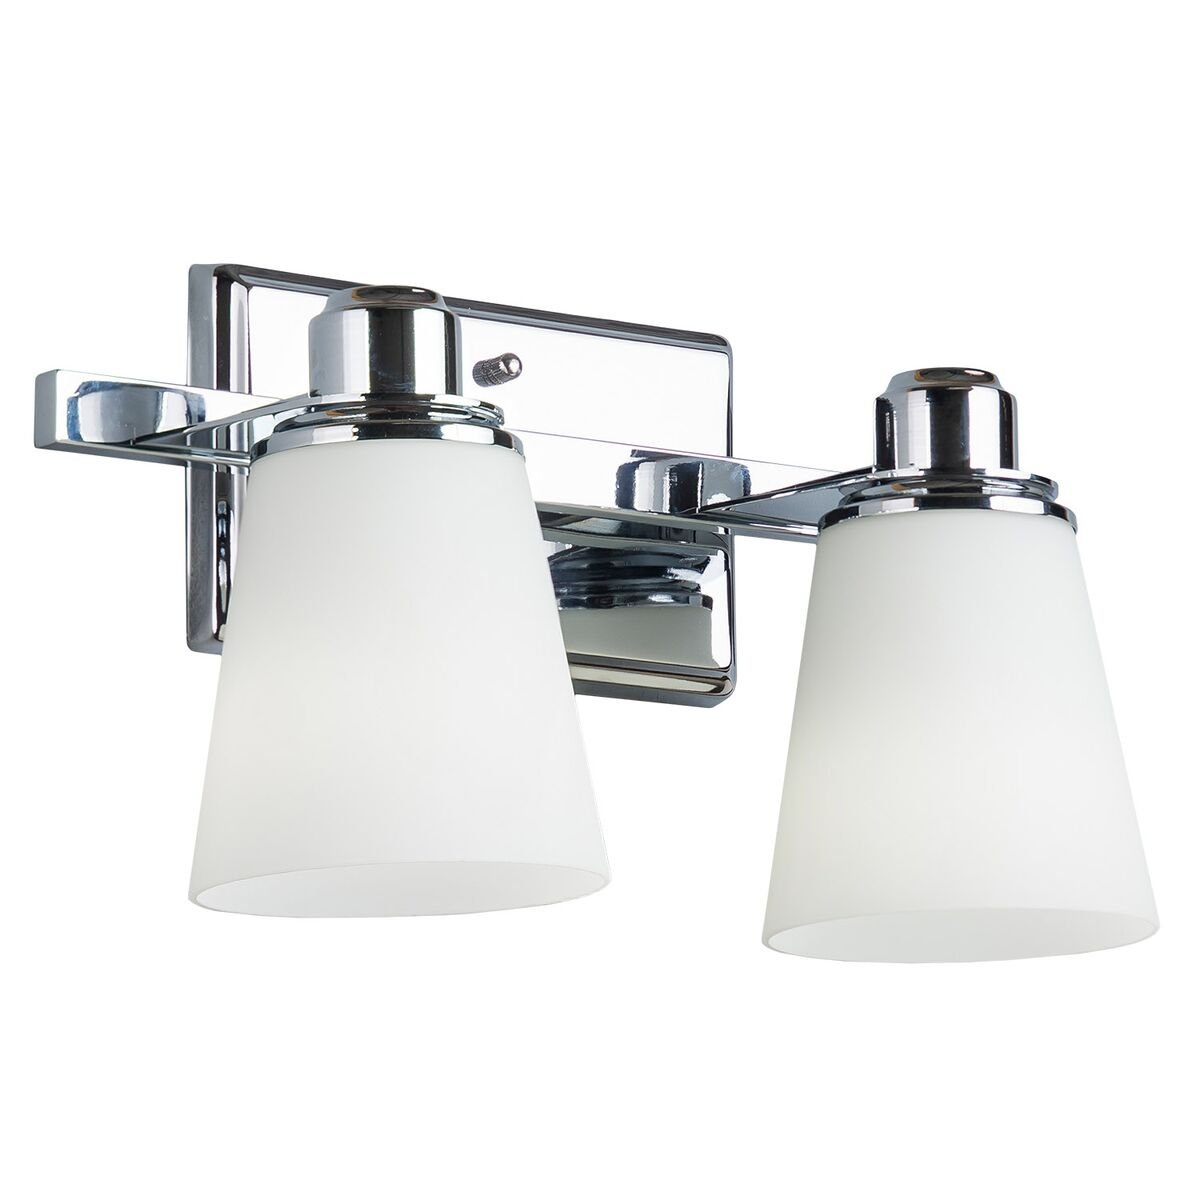 Terracina Two-Light Vanity Sconce Lamp, Polished Chrome with Opal Glass Linea di Liara LL-WL220-2